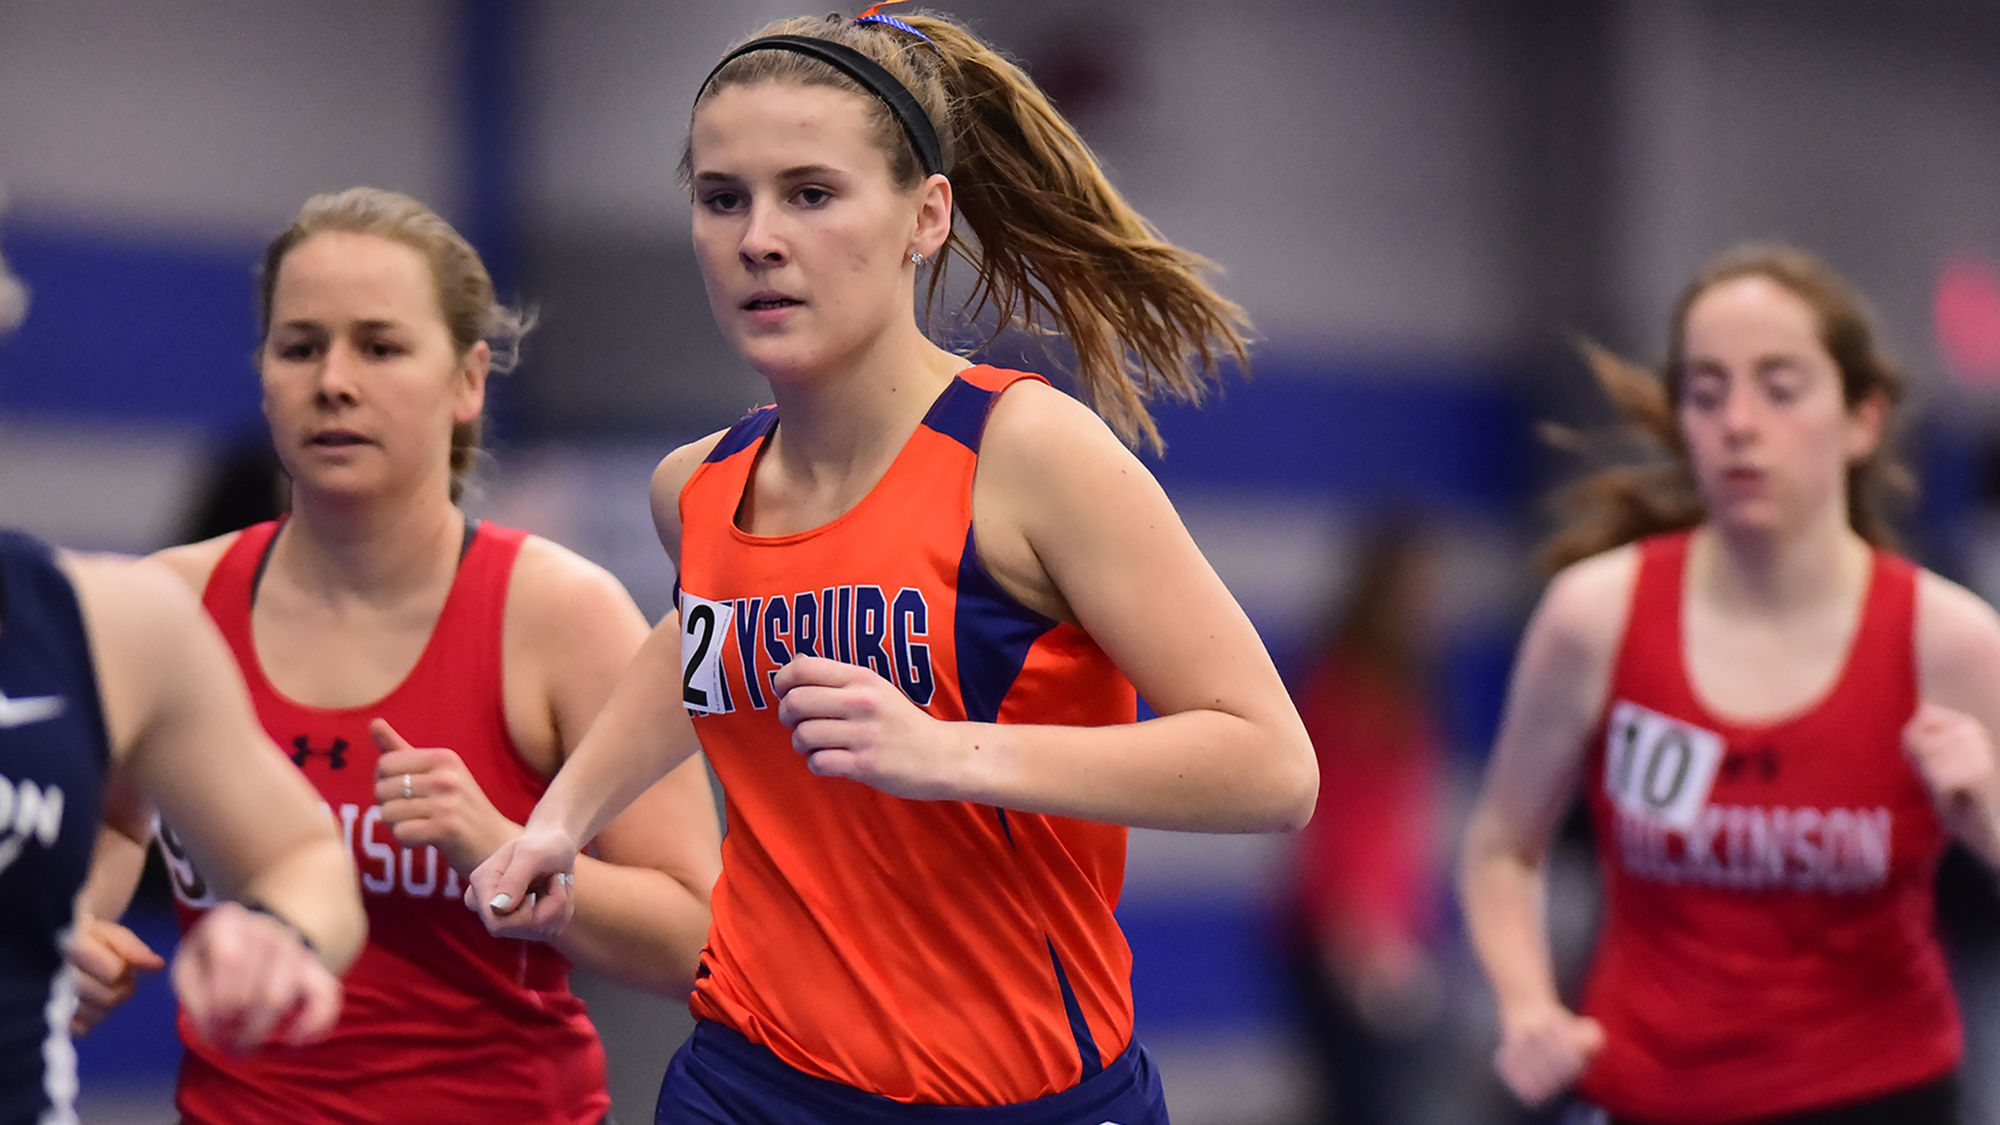 Women's Track Competes at Susquehanna